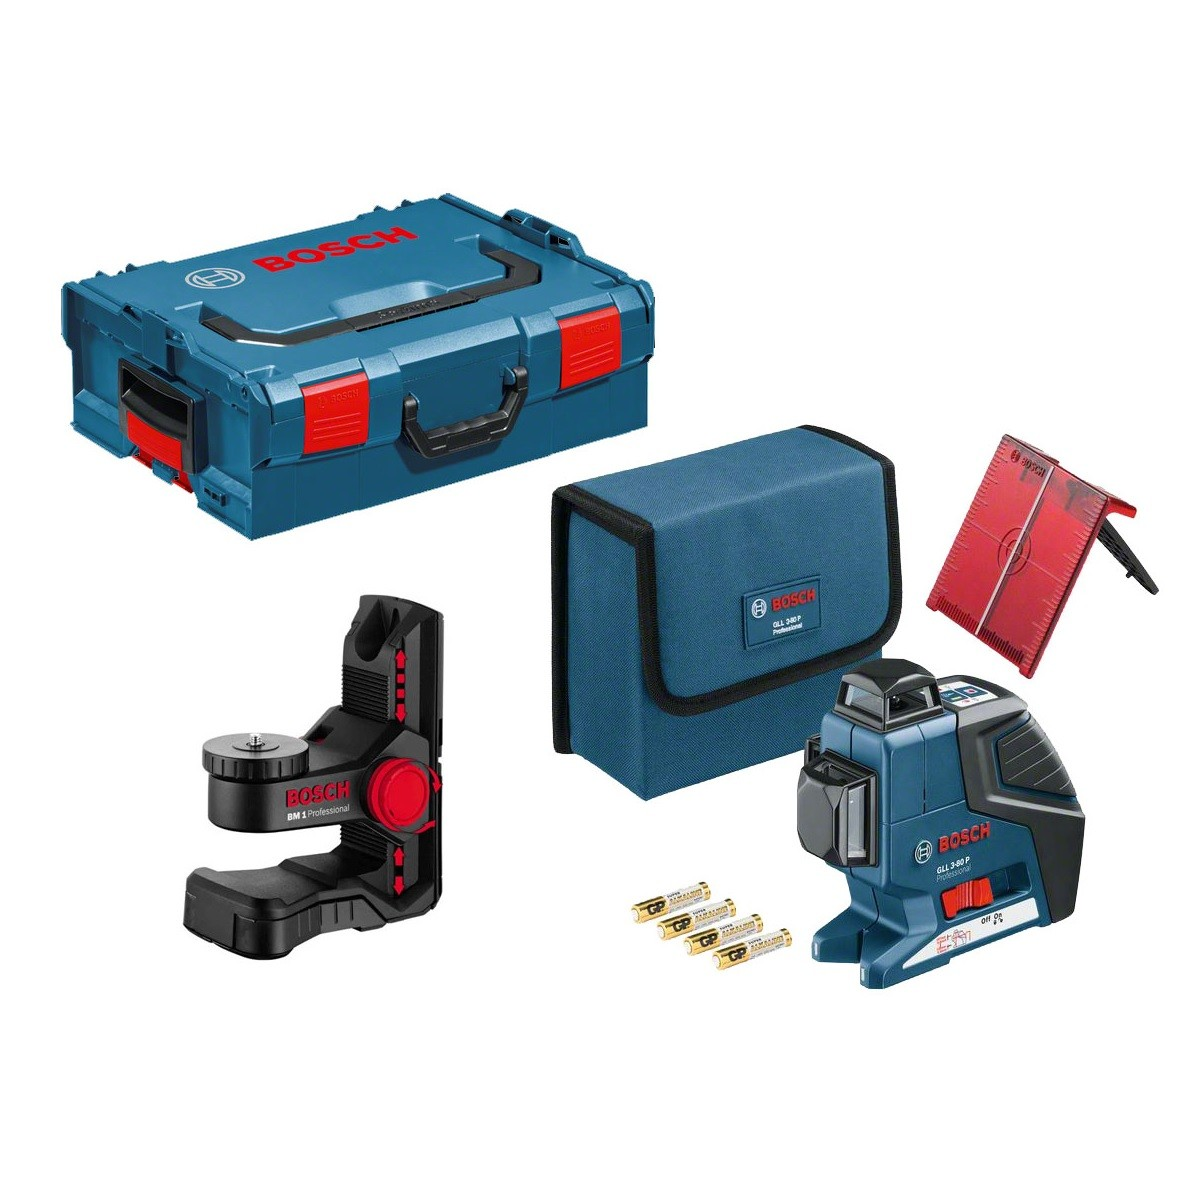 Bosch GLL 3-80 P Self Levelling Laser inc BM1 Wall Mount in L-Boxx